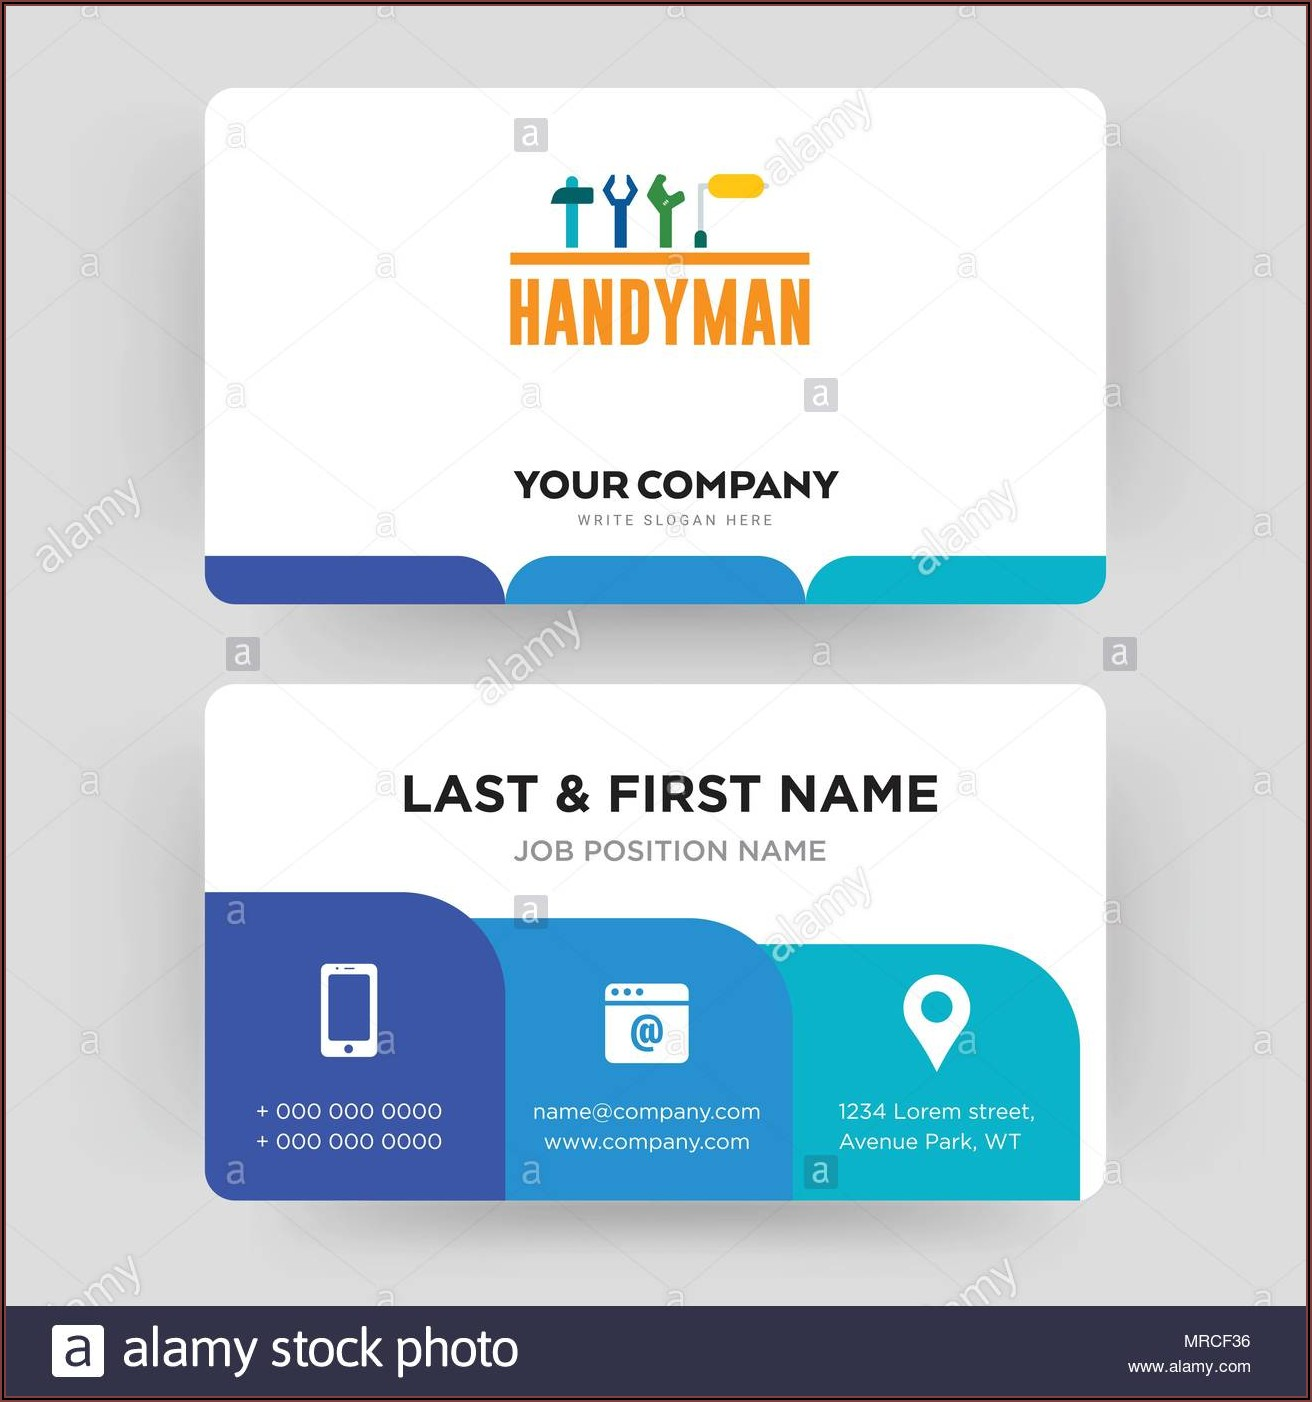 Handyman Business Card Template